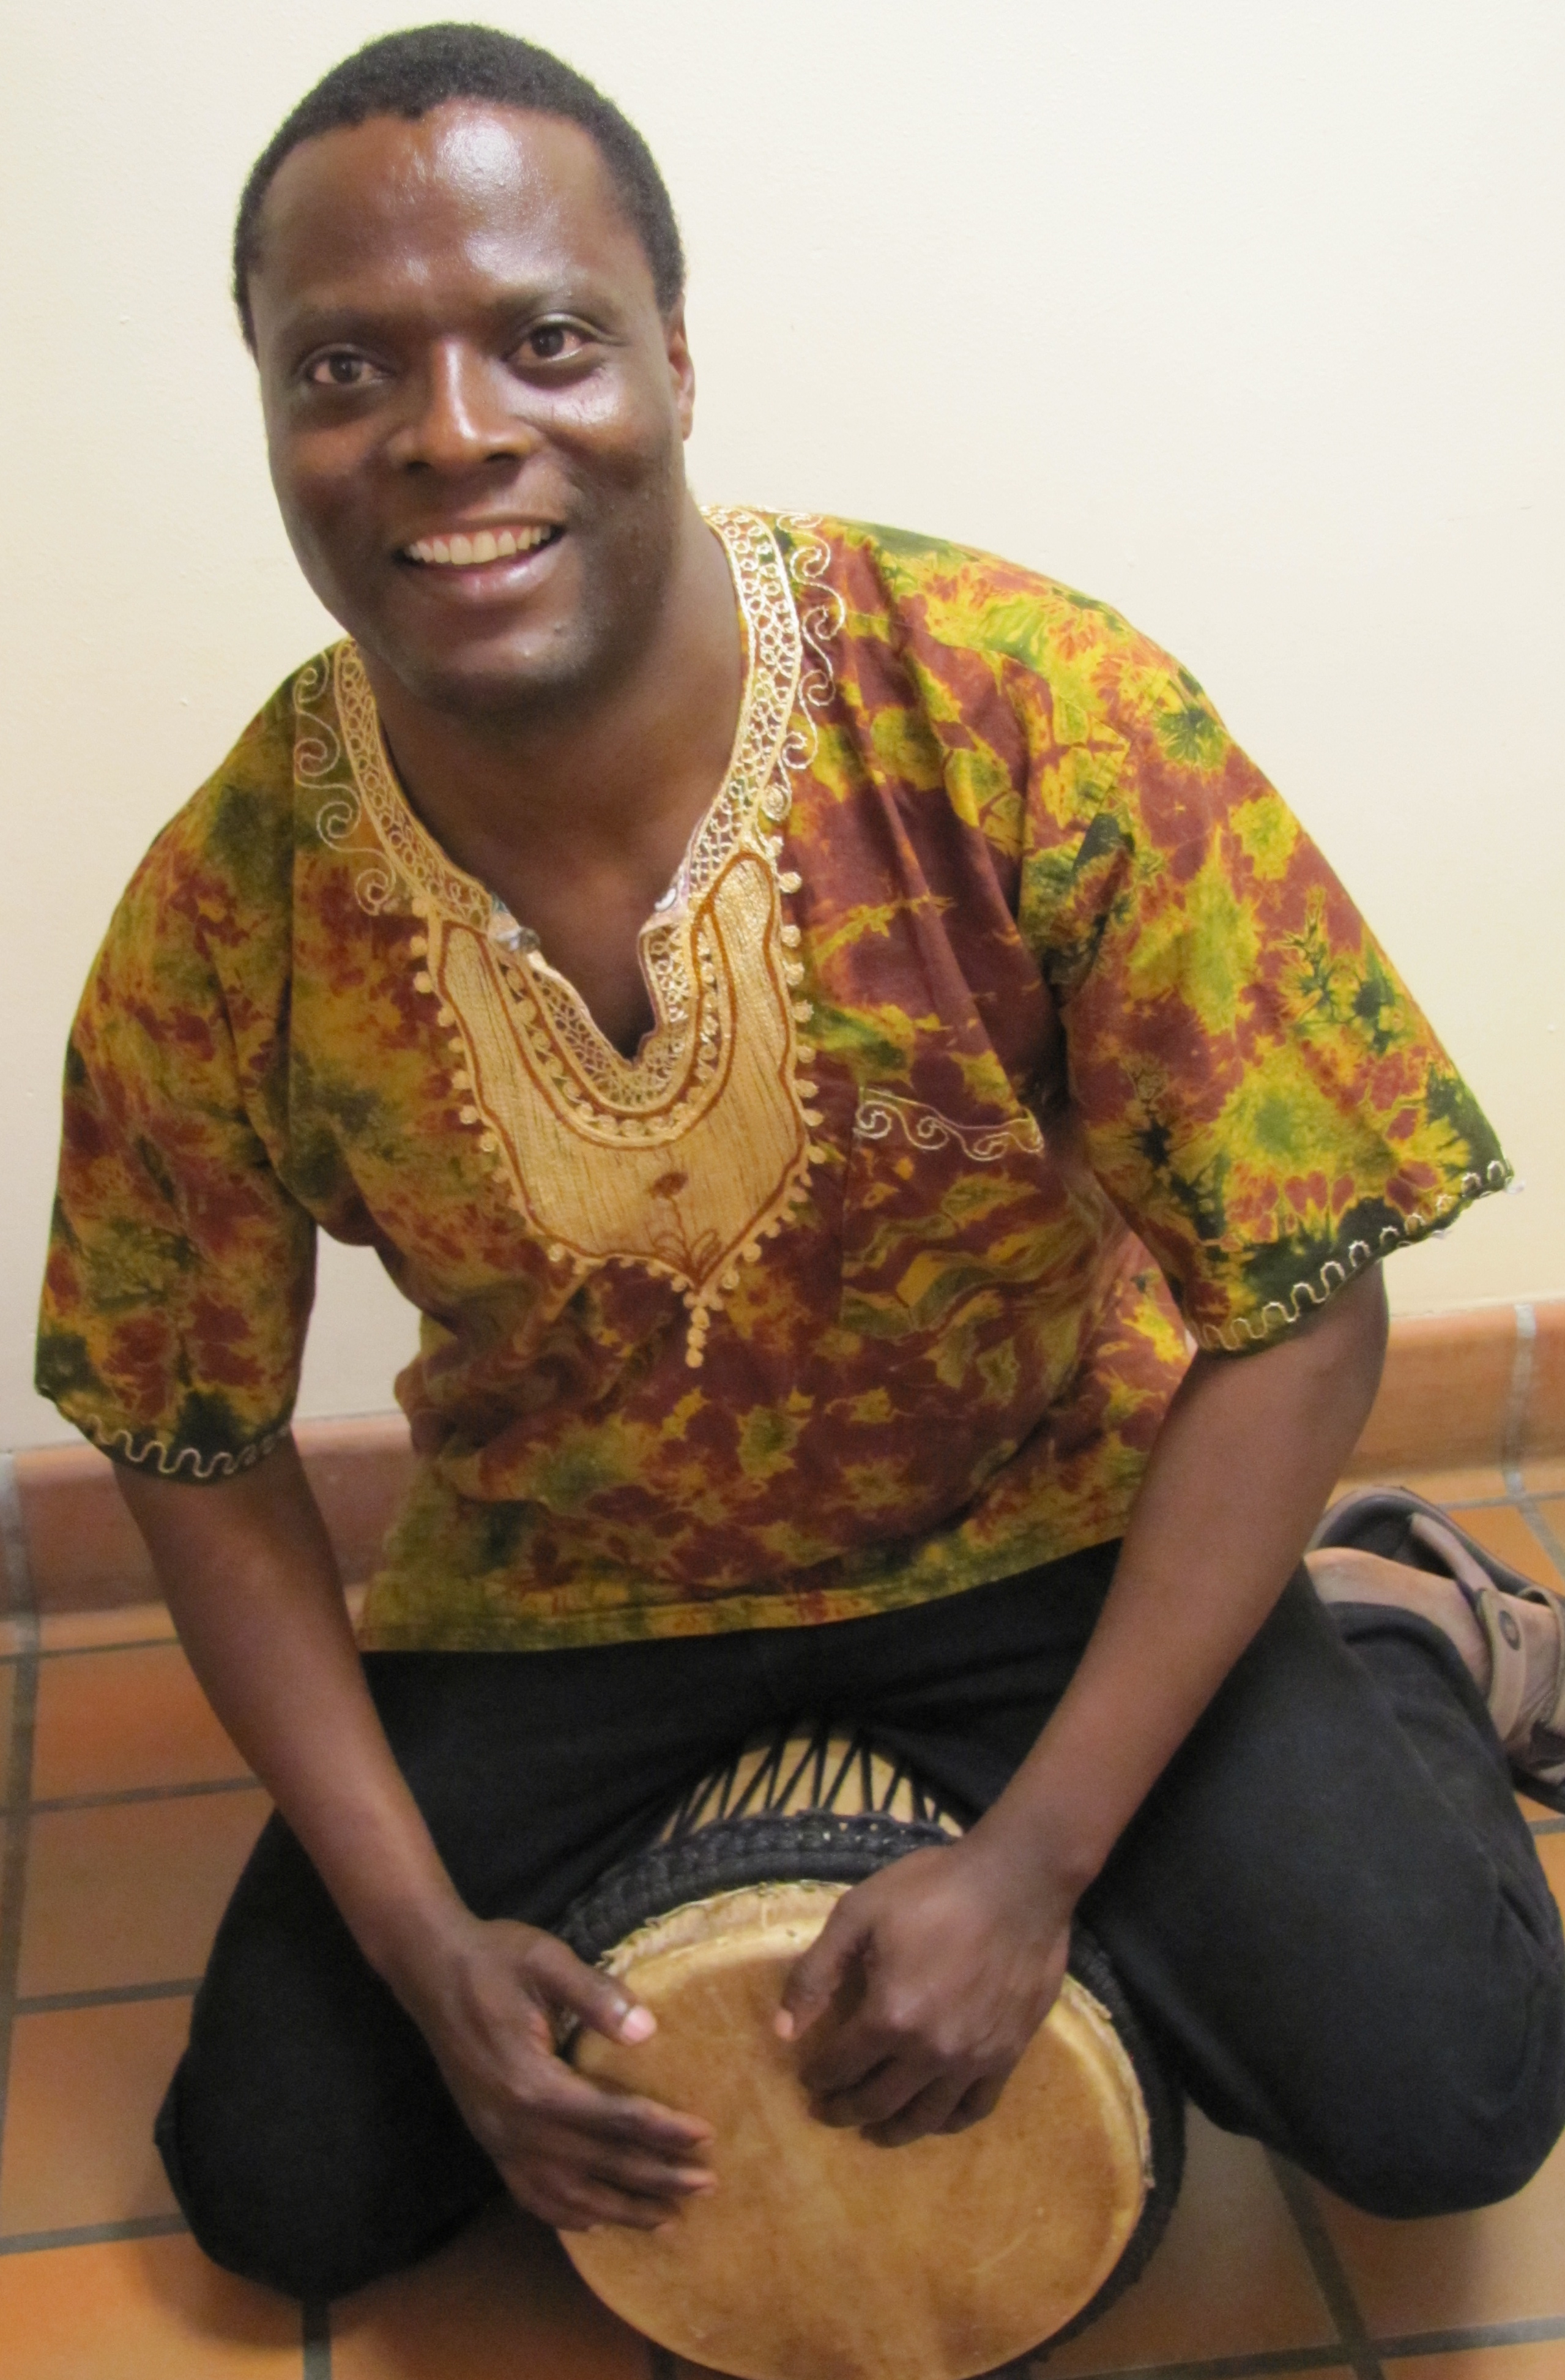 Kedmon Mapana, an artist in residence at the School of Music from the Wagogo region of central Tanzania, will present a concert with his students featuring choral music, dance, and instrumental music of Tanzania's Wagogo people Dec. 6 in Brechemin Auditorium.